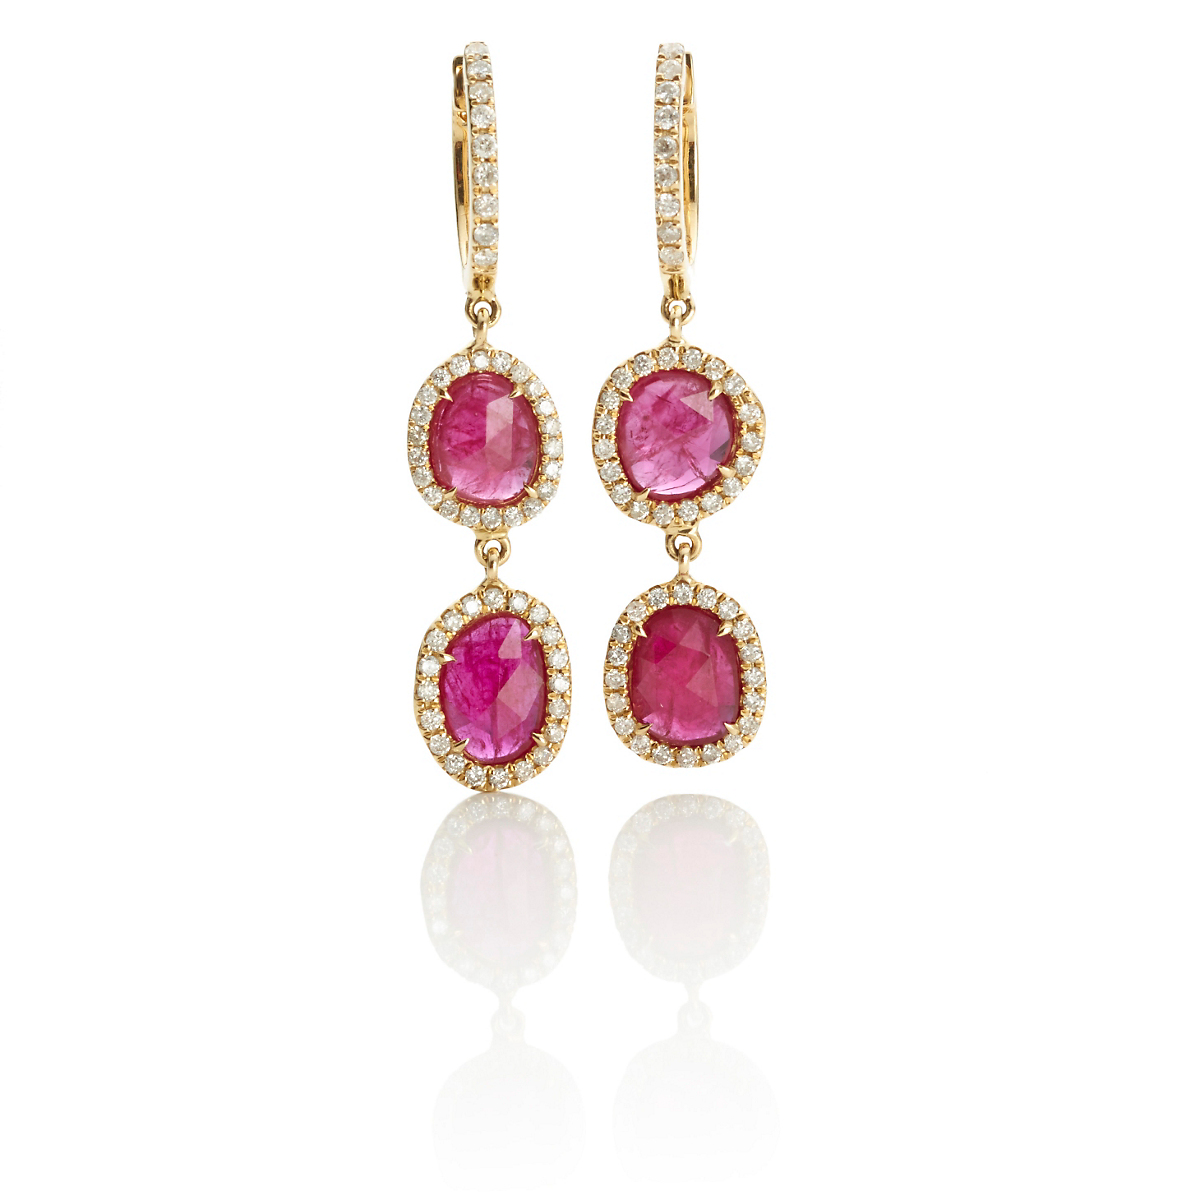 Ashley Morgan Gold & Double Rubellite Slice Earring